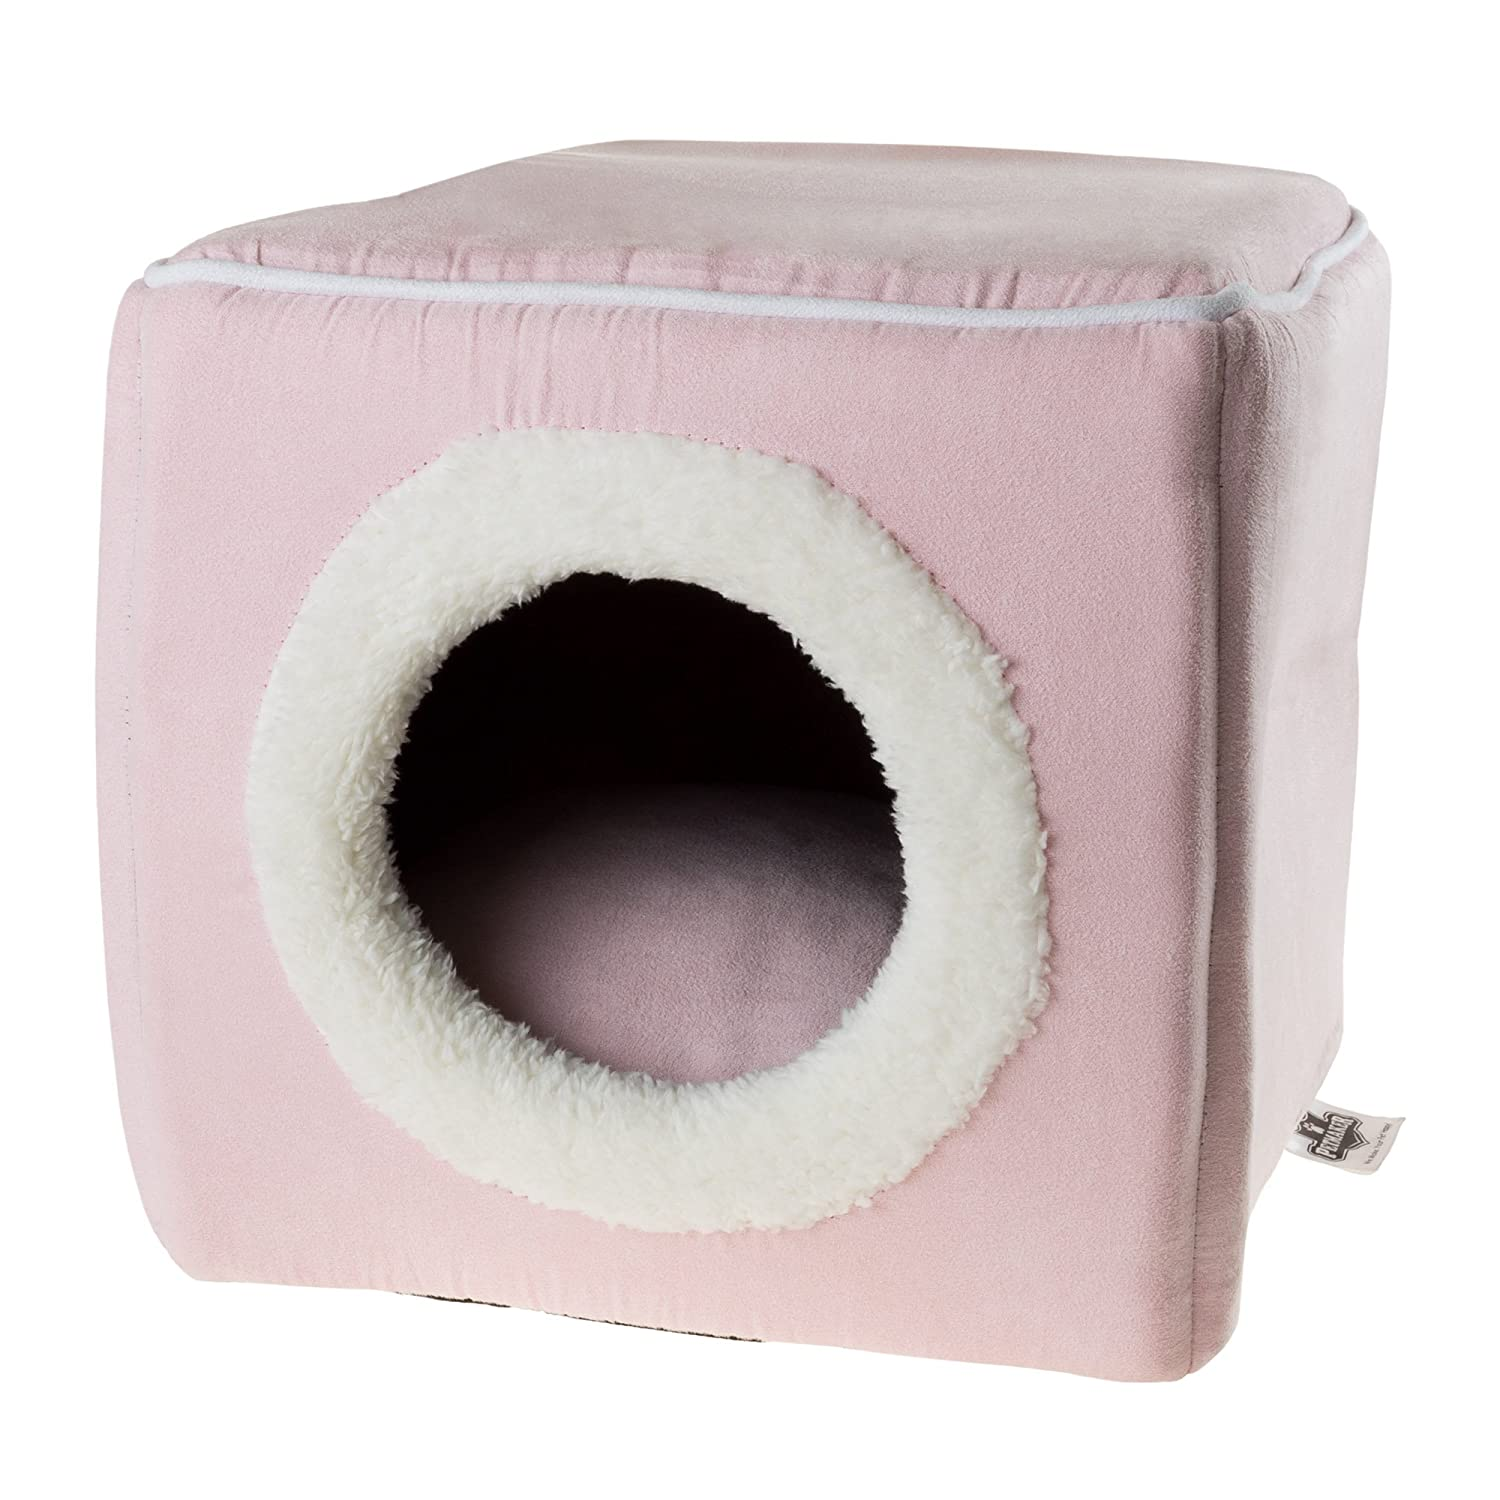 PETMAKER Cat Pet Bed, Cave-Soft Indoor Enclosed Covered Cavern/House for Cats, Kittens, and Small Pets with Removable Cushion Pad (Pink) 80-PET6019